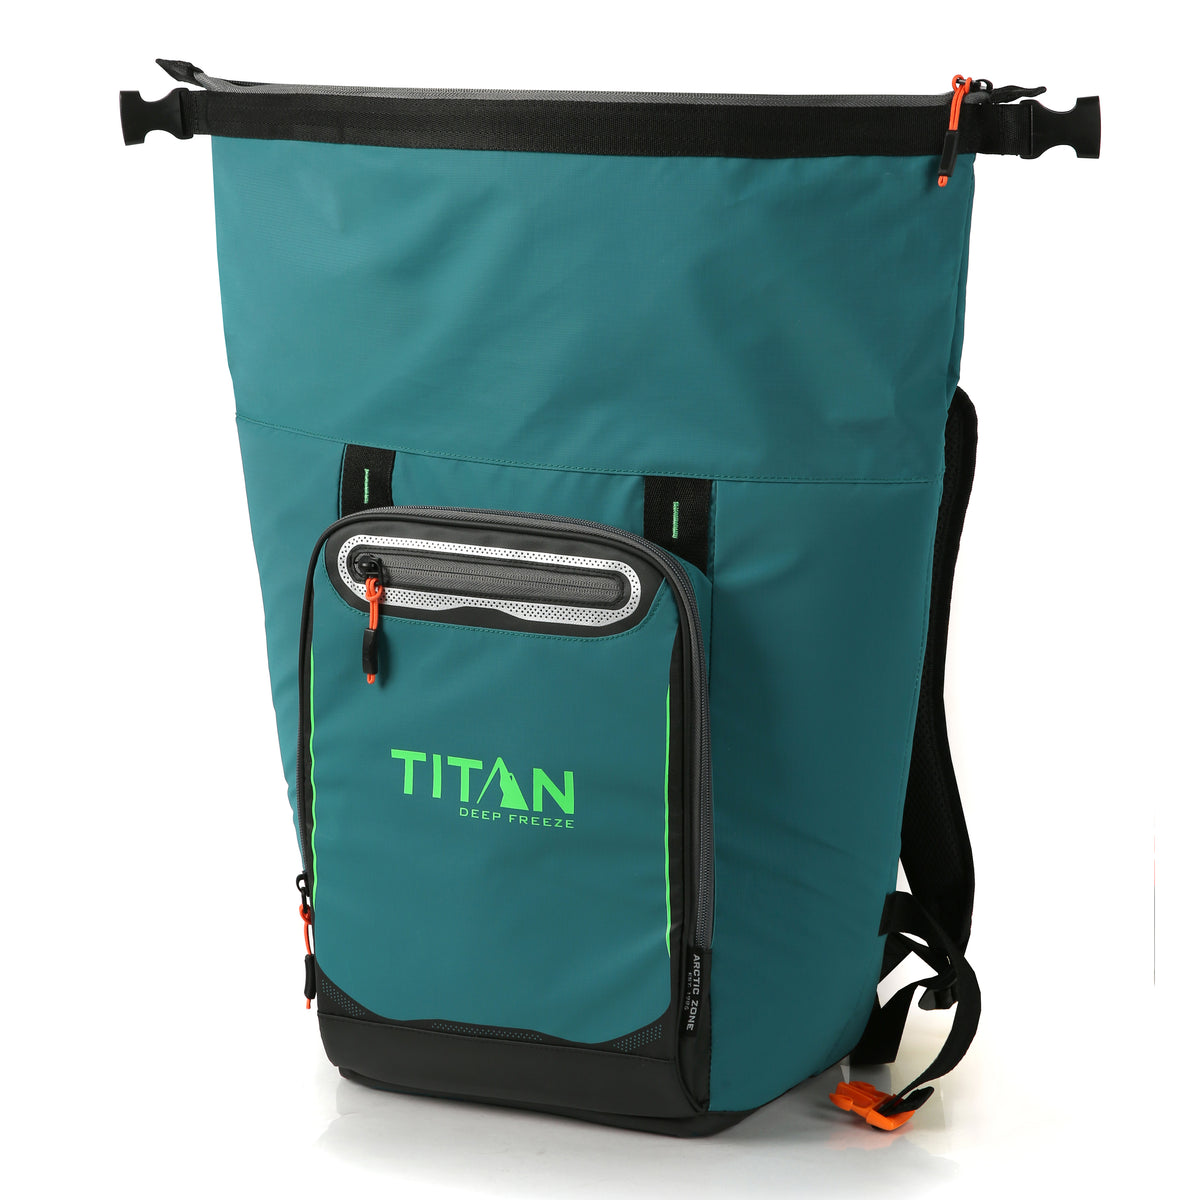 Titan Deep Freeze® 20 Can Rolltop Backpack - Pine - Unrolled, empty